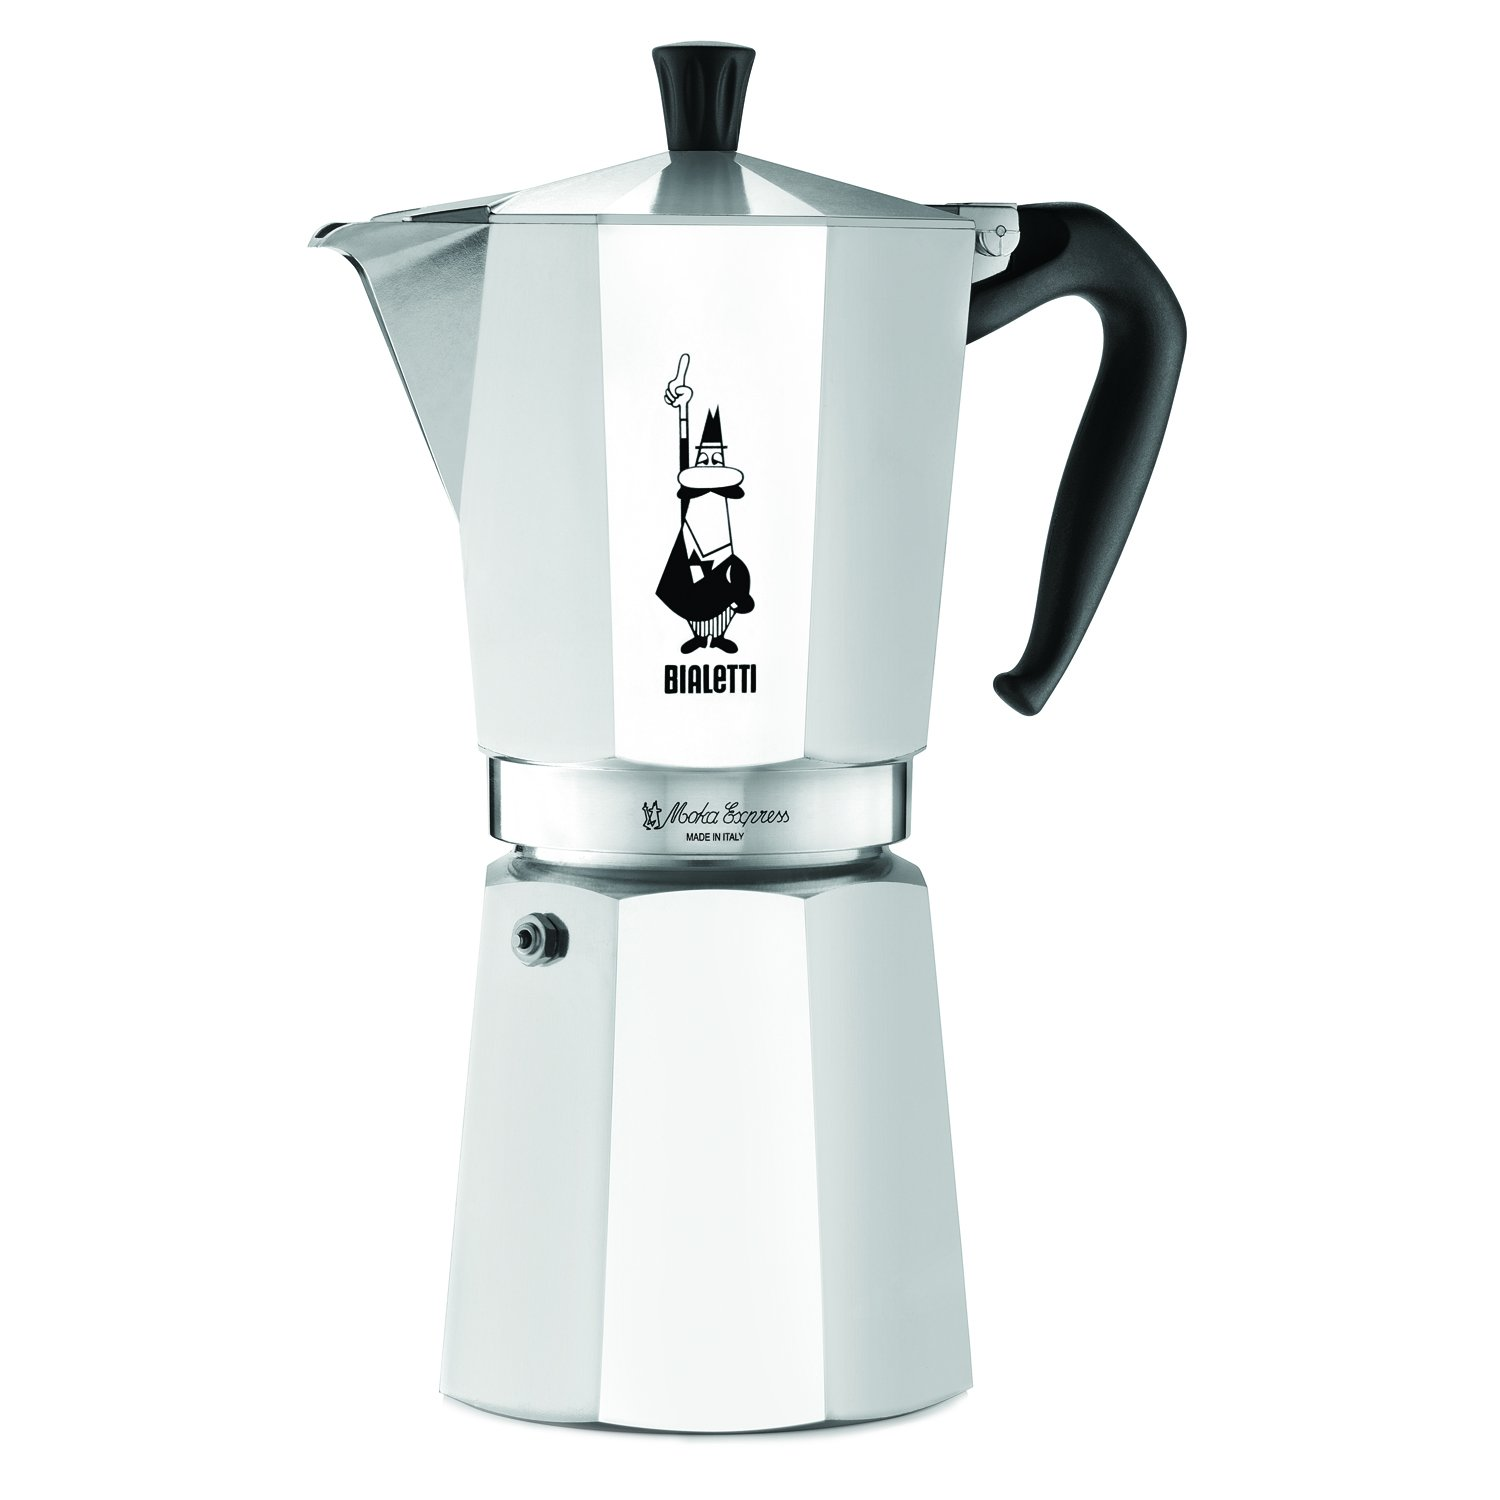 Bialetti 12 Cup Moka Express Stovetop Espresso Coffee Maker Pot Latte 24 ounce 06853